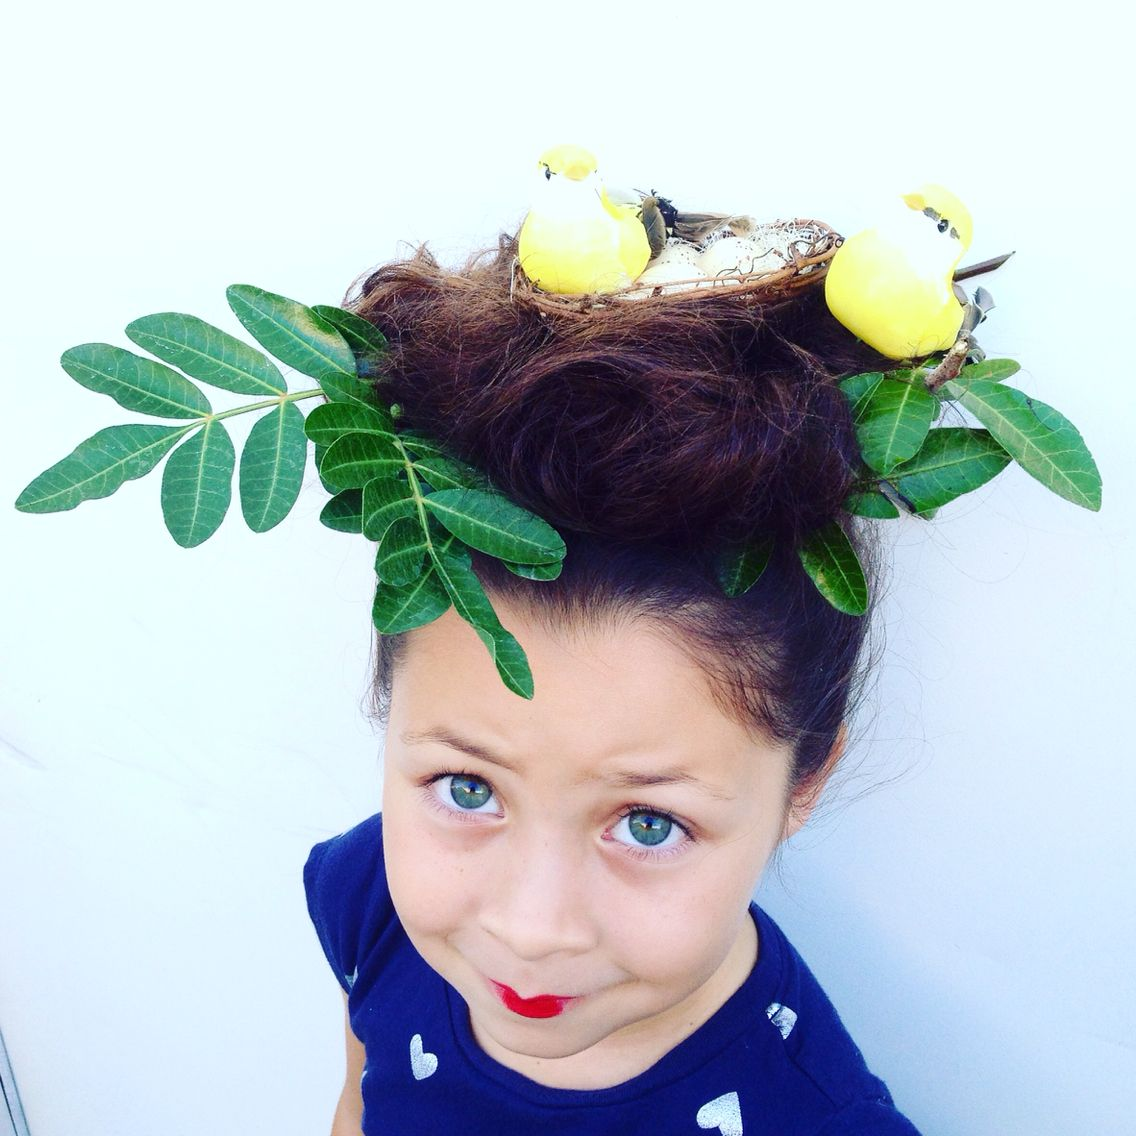 bird nest for crazy hair day. | crazy hair day | pinterest | crazy